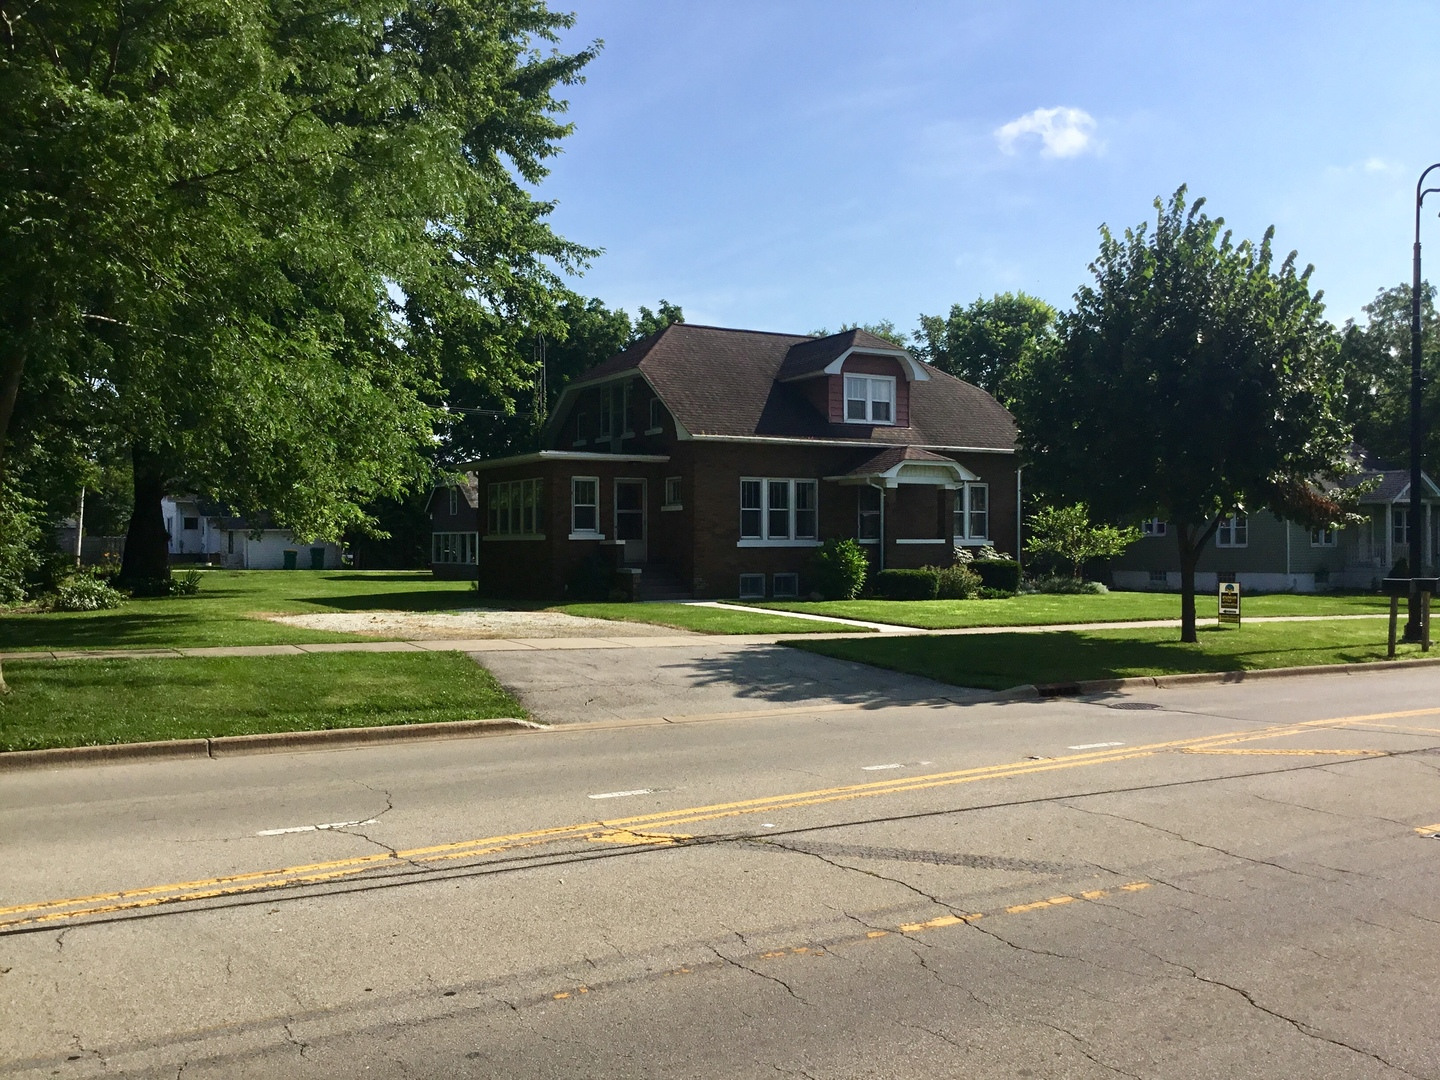 106 WEST MISSISSIPPI AVENUE, ELWOOD, IL 60421